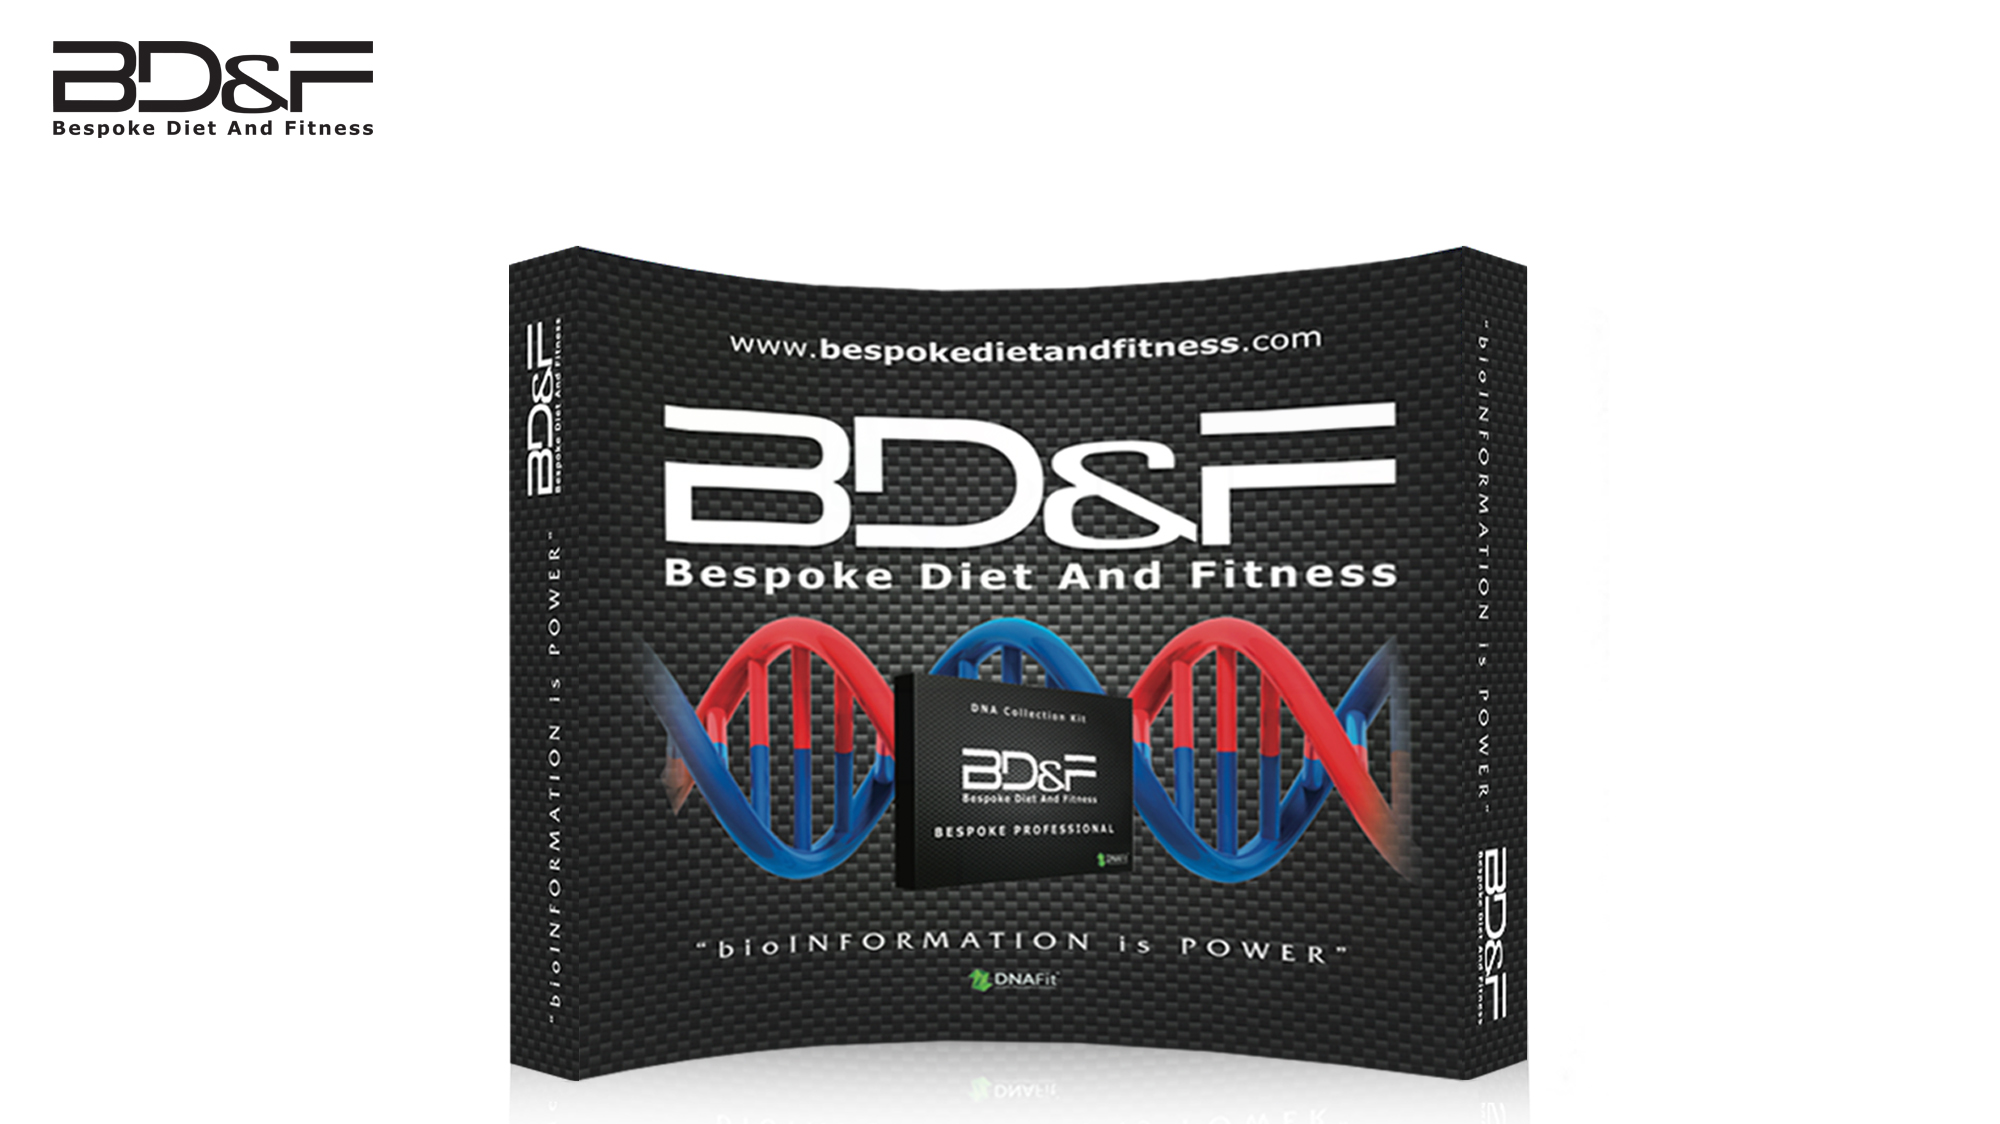 BD&F – Trade show booth